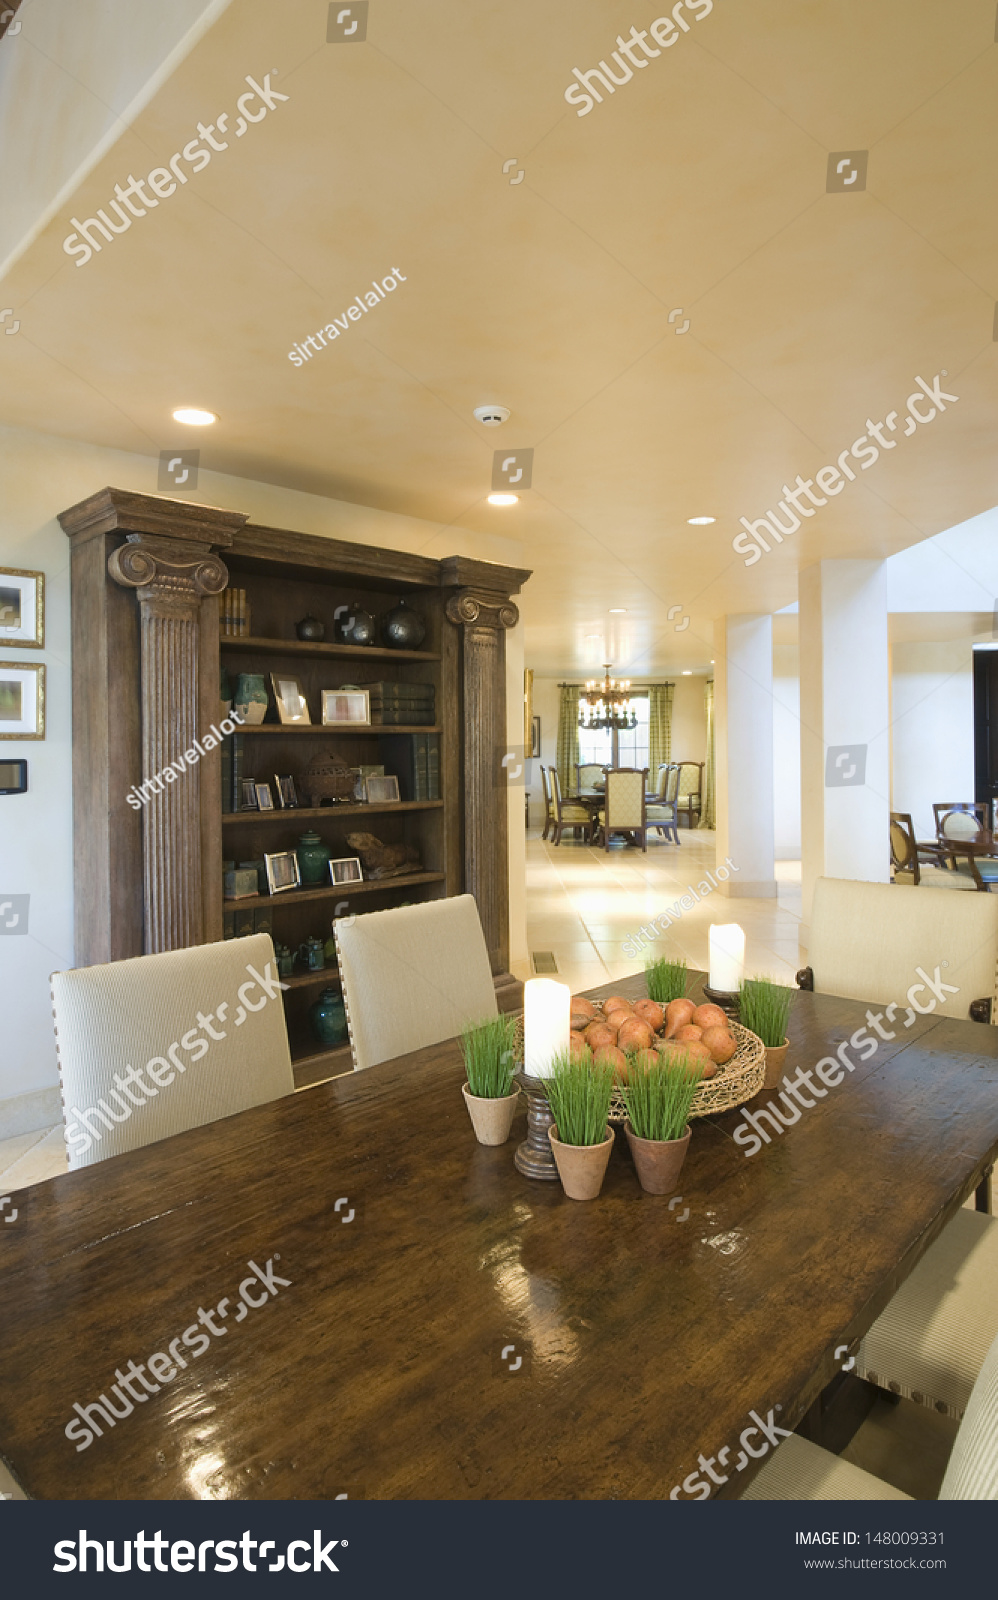 Wooden Dining Table Cabinet Dining Room Stock Photo 16 ...